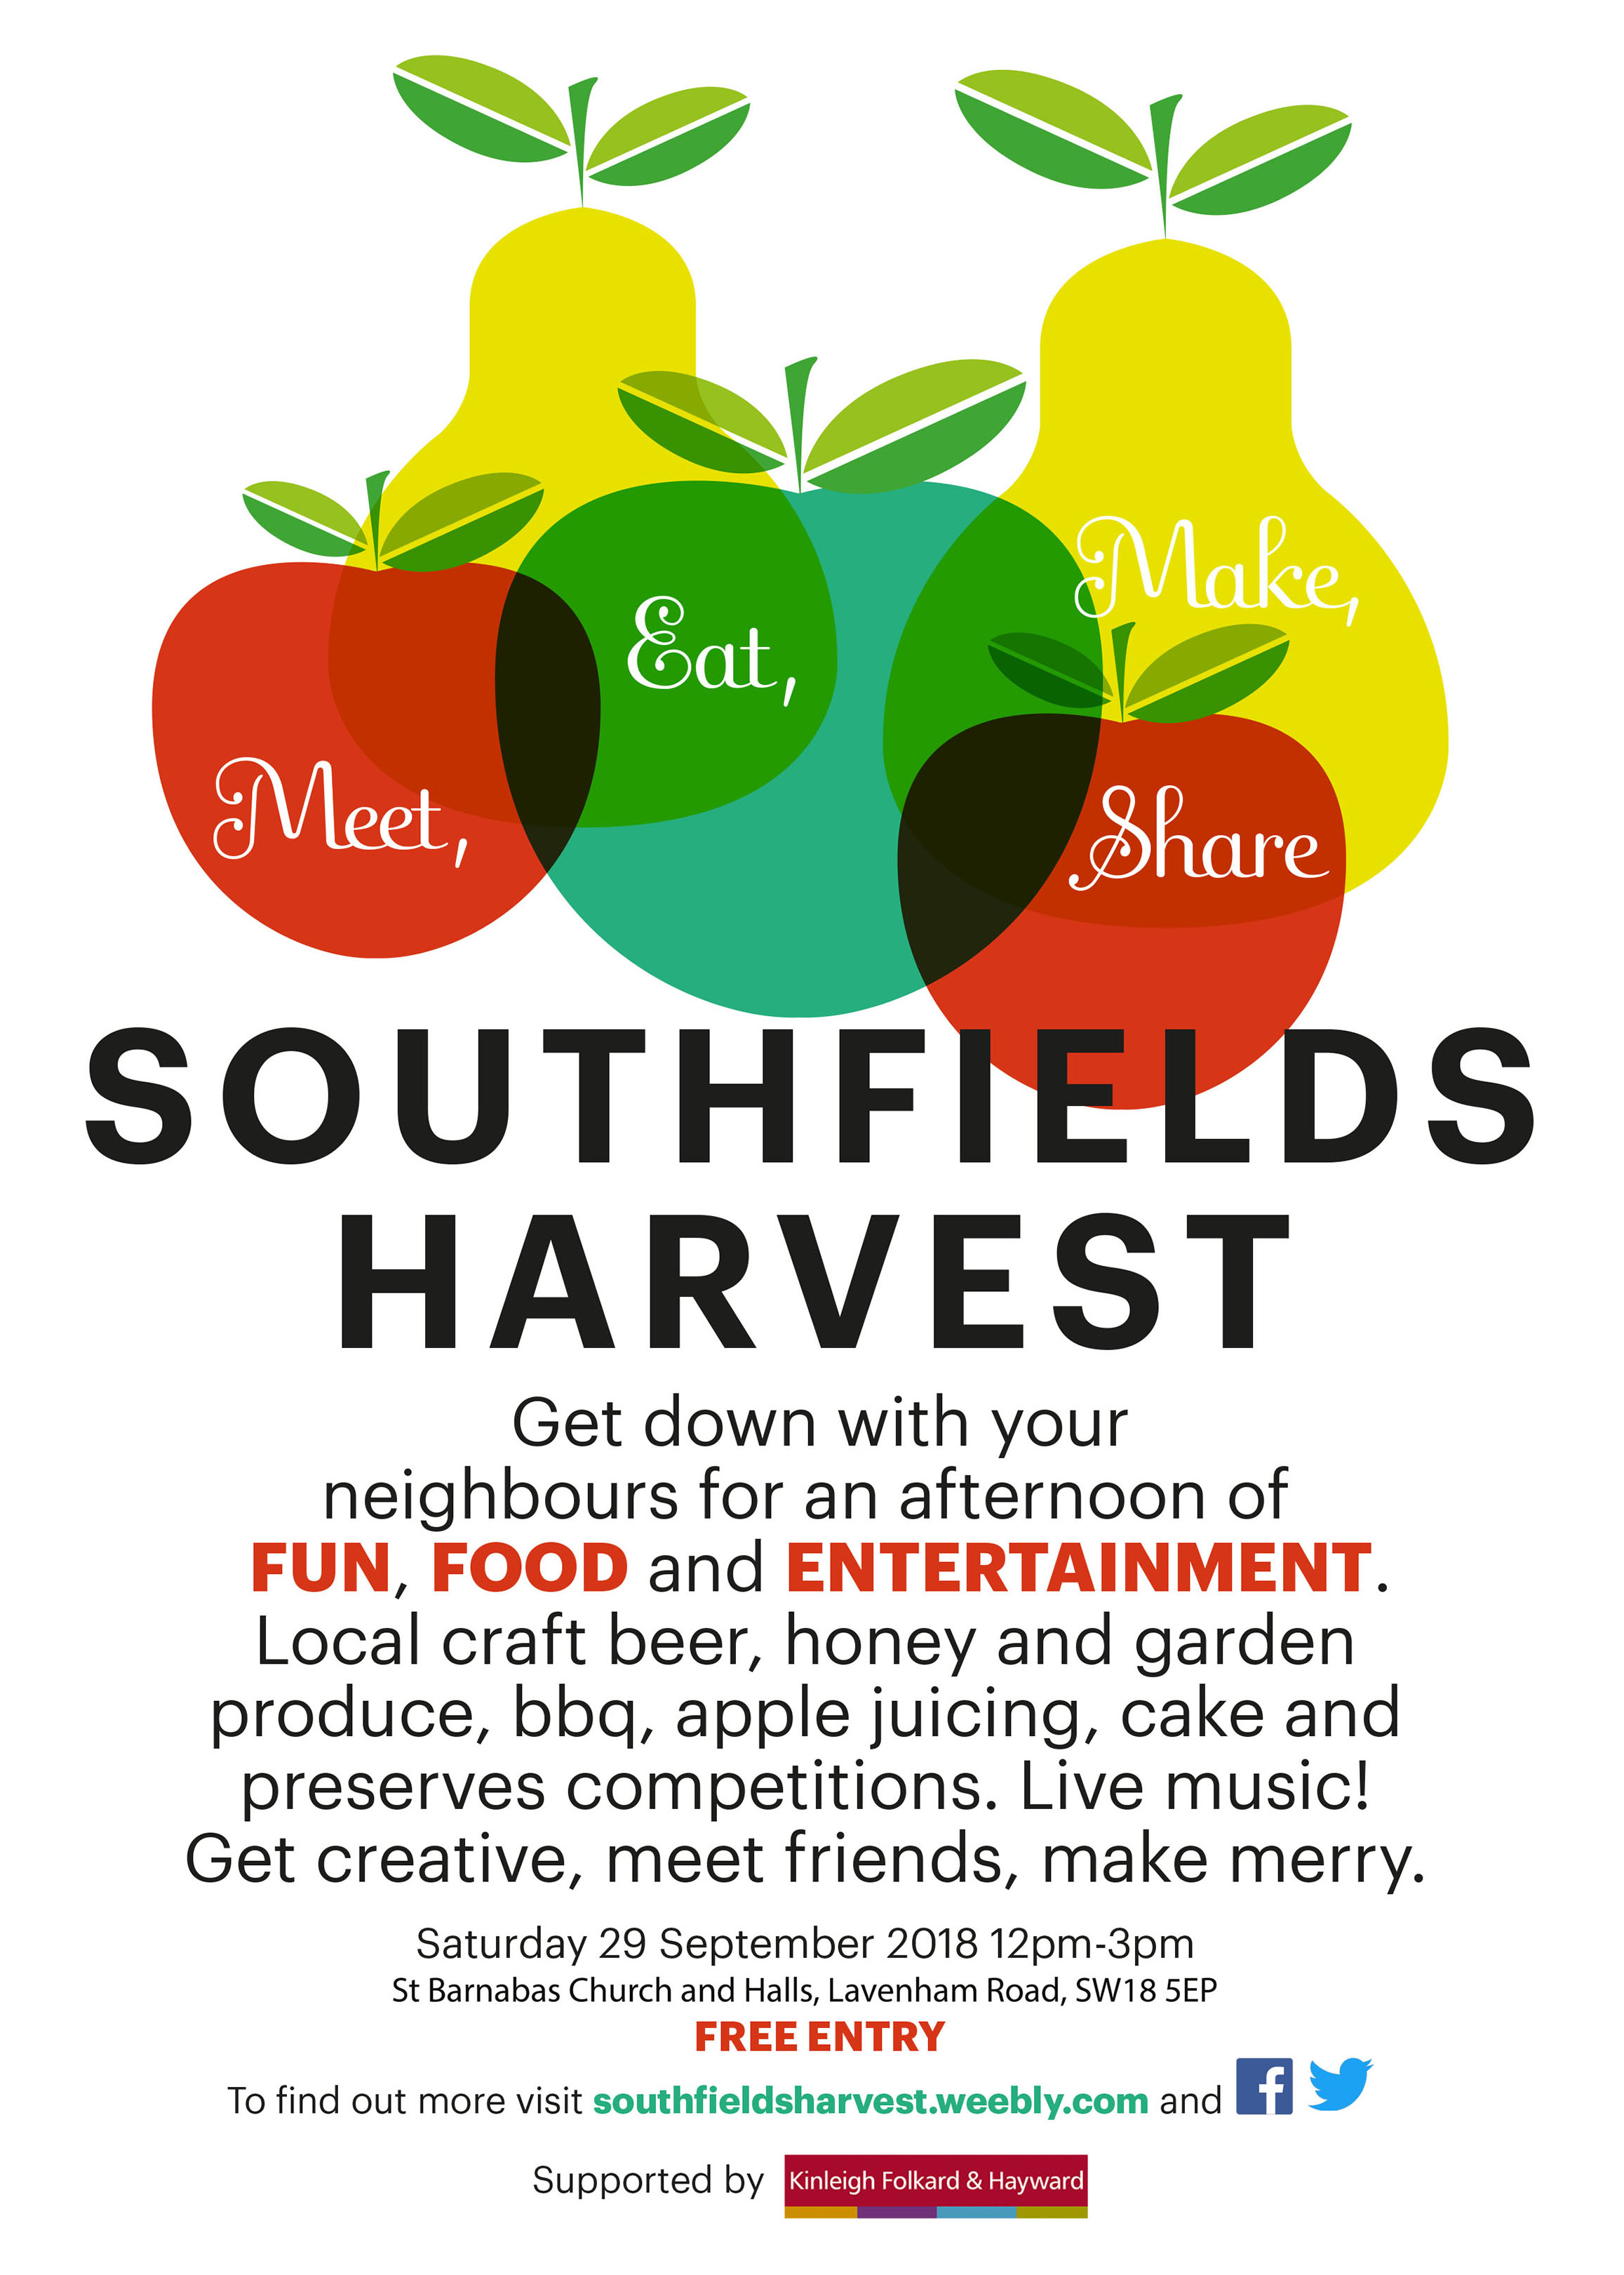 Southfields Harvest